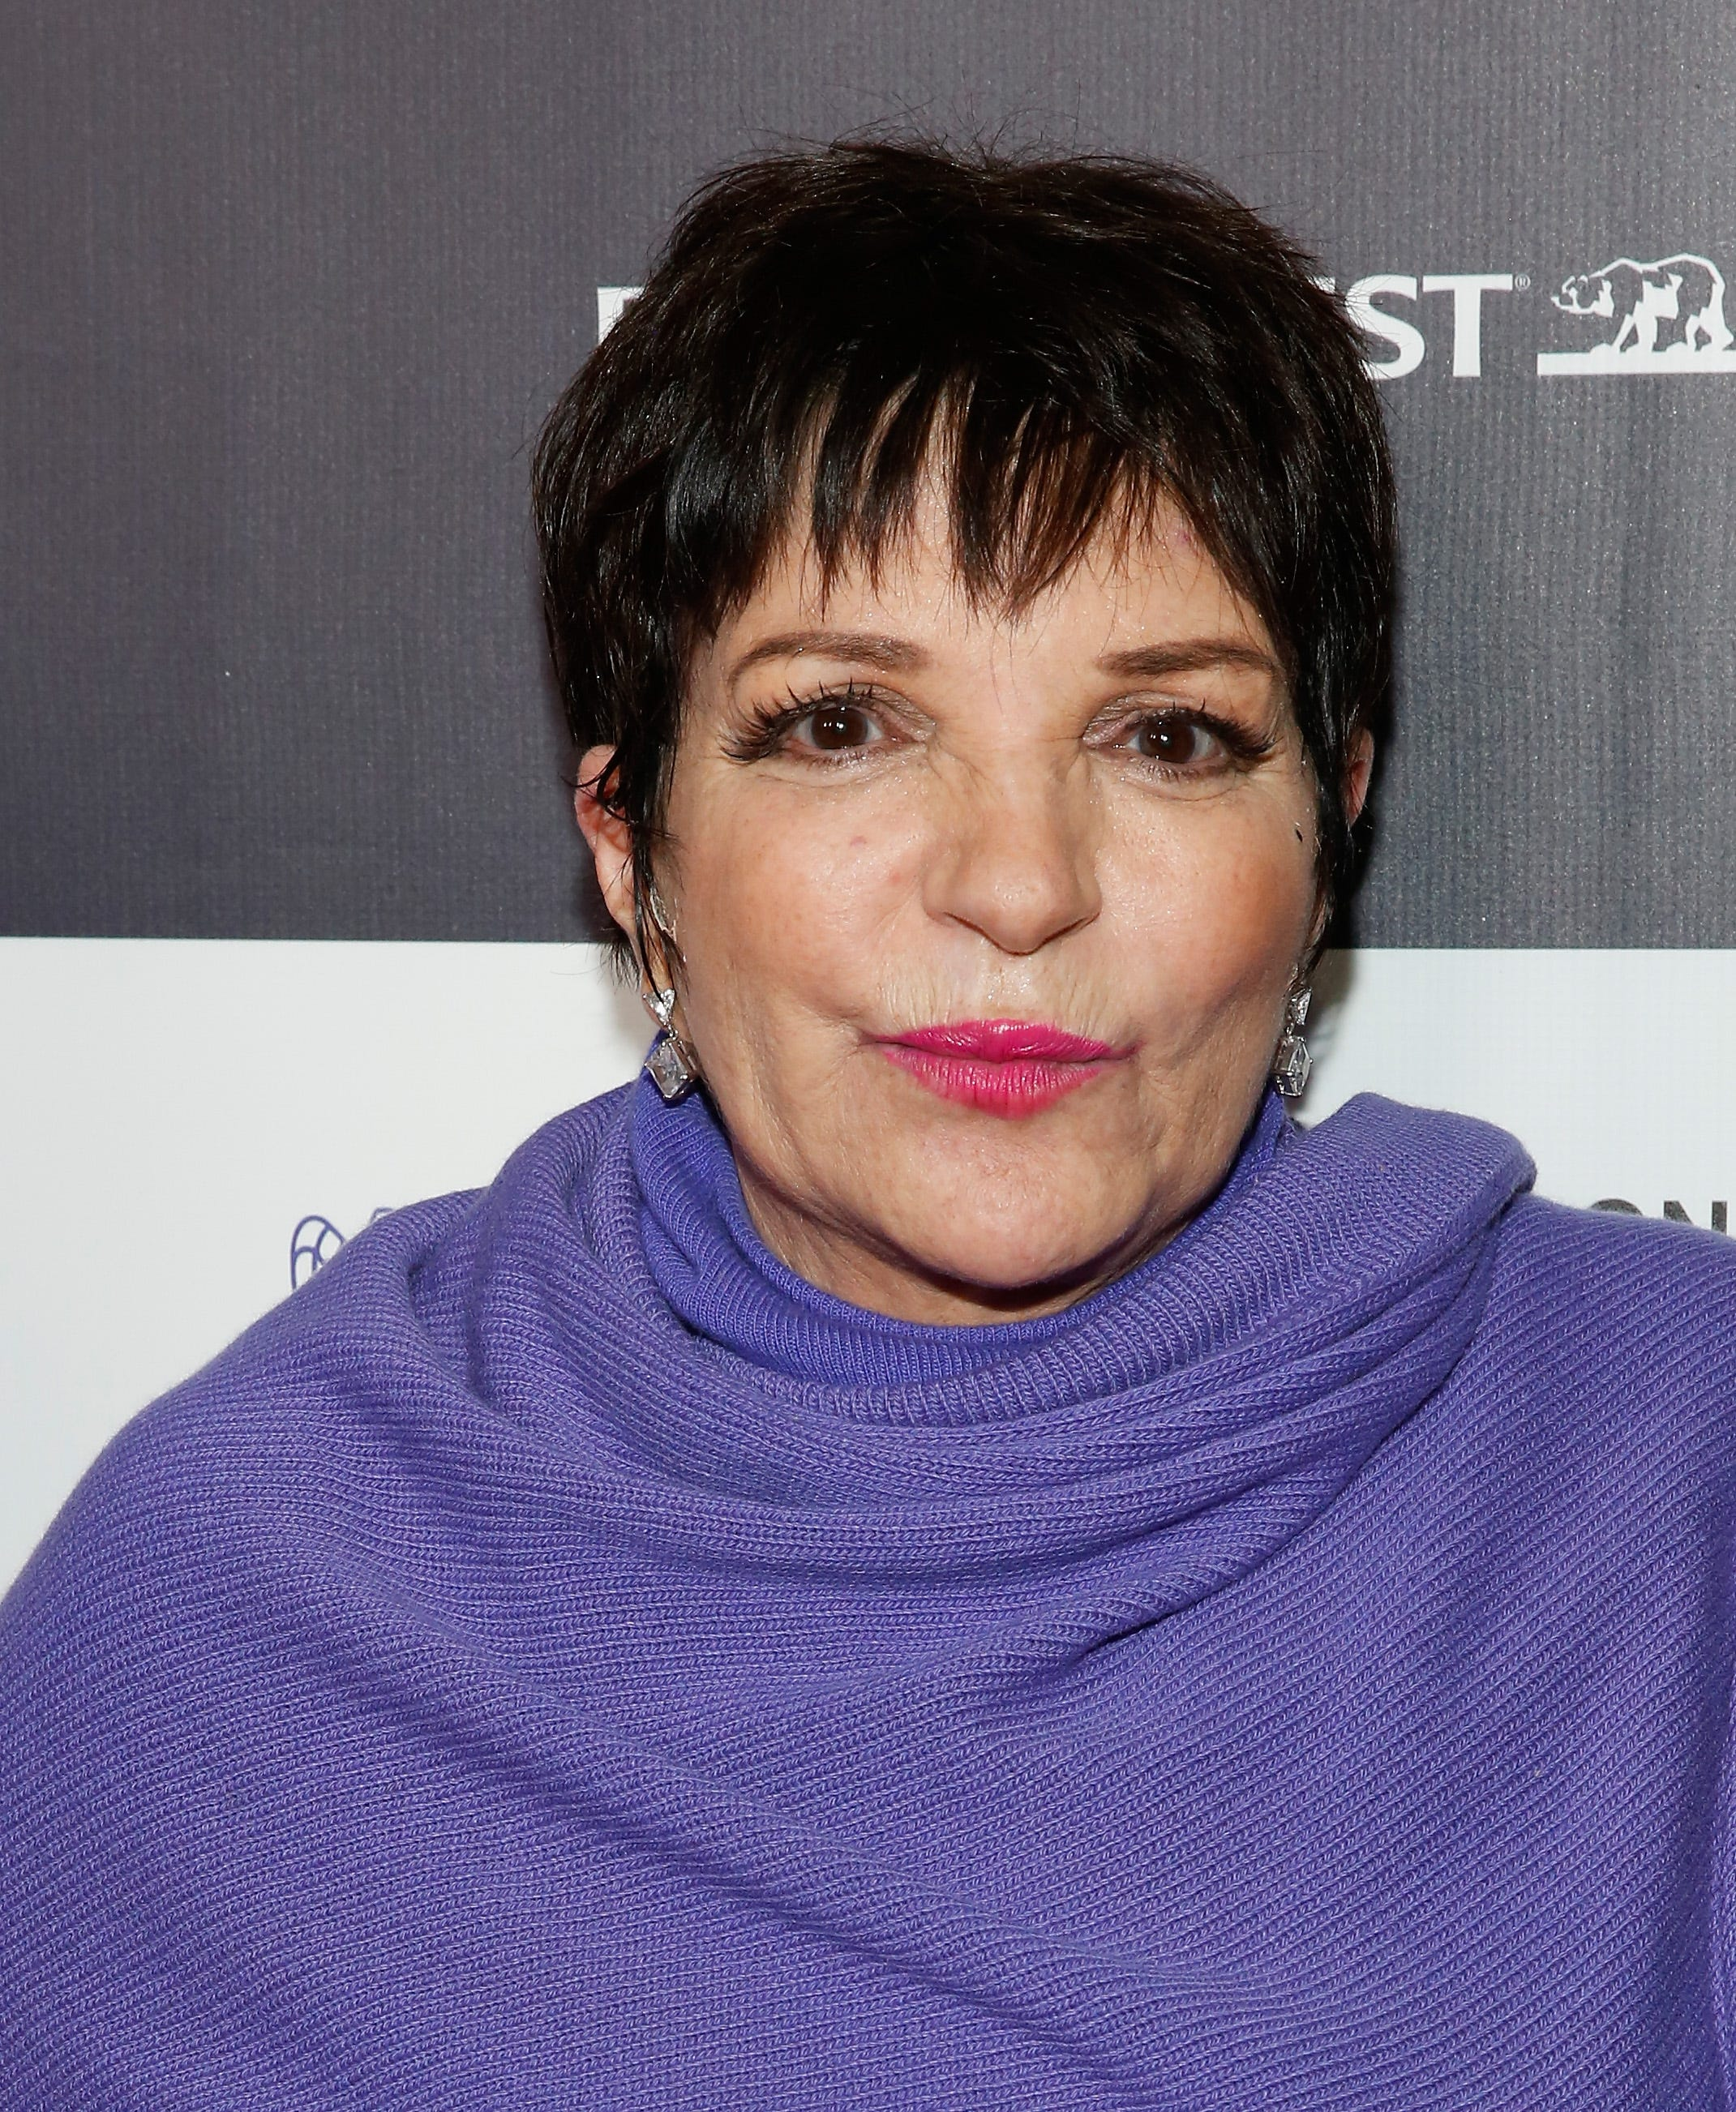 Liza Minnelli nudes (33 photos), Tits, Cleavage, Boobs, butt 2015